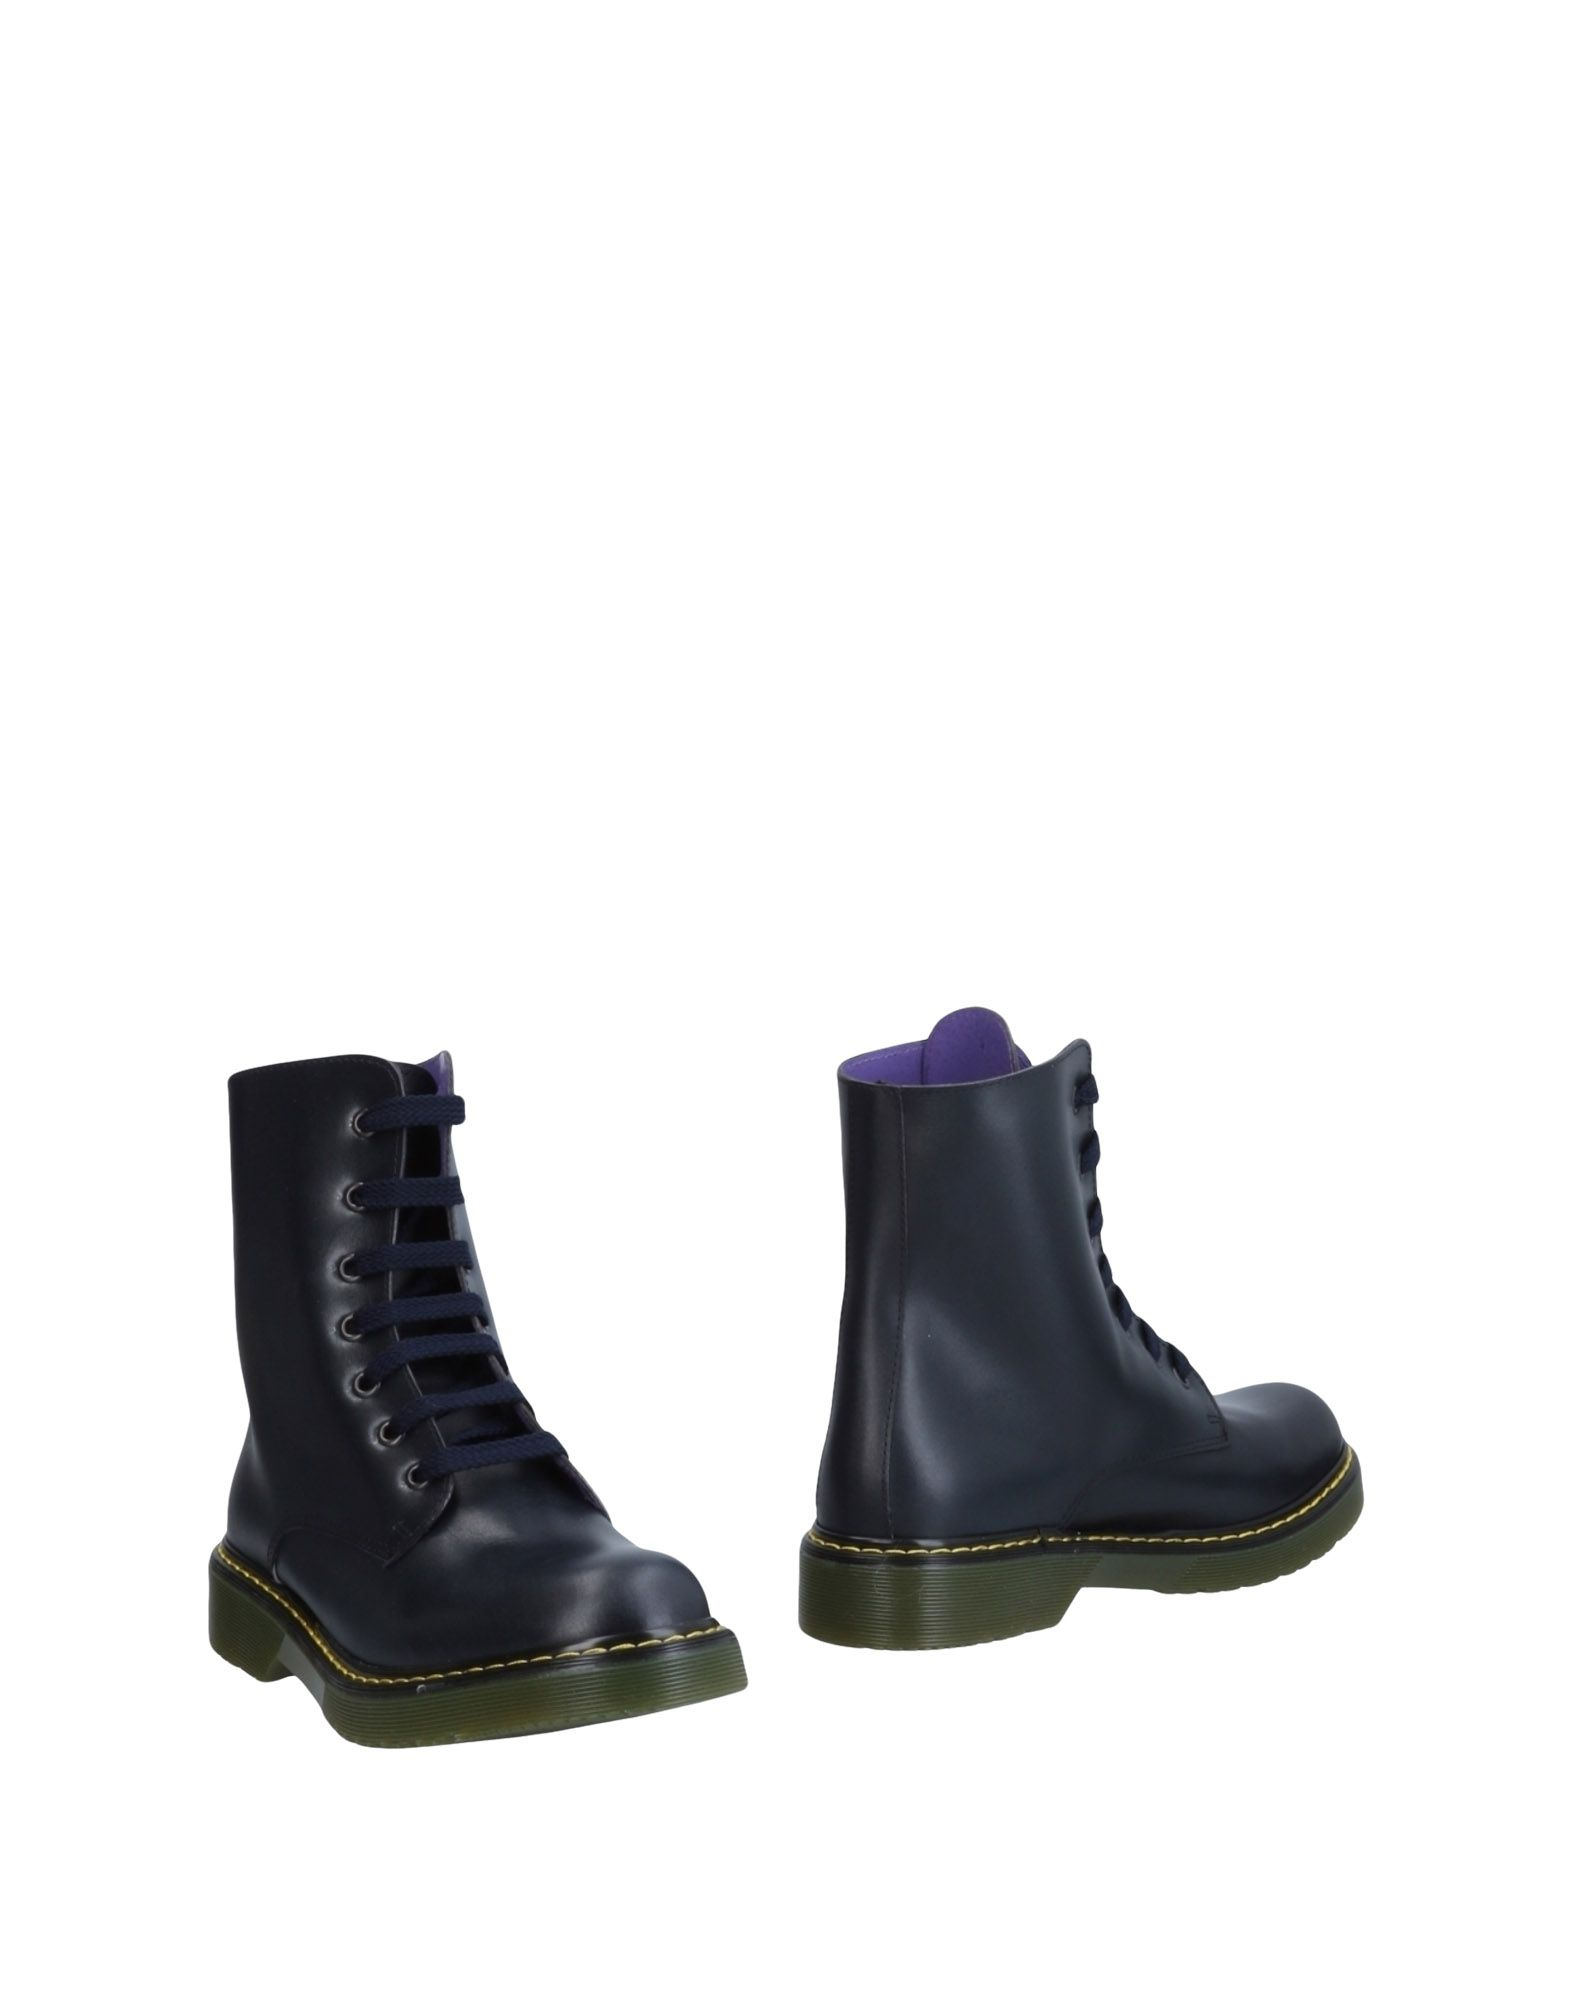 Tsd12 Ankle Boot Boots - Women Tsd12 Ankle Boots Boot online on  Canada - 11453882CC 684c68